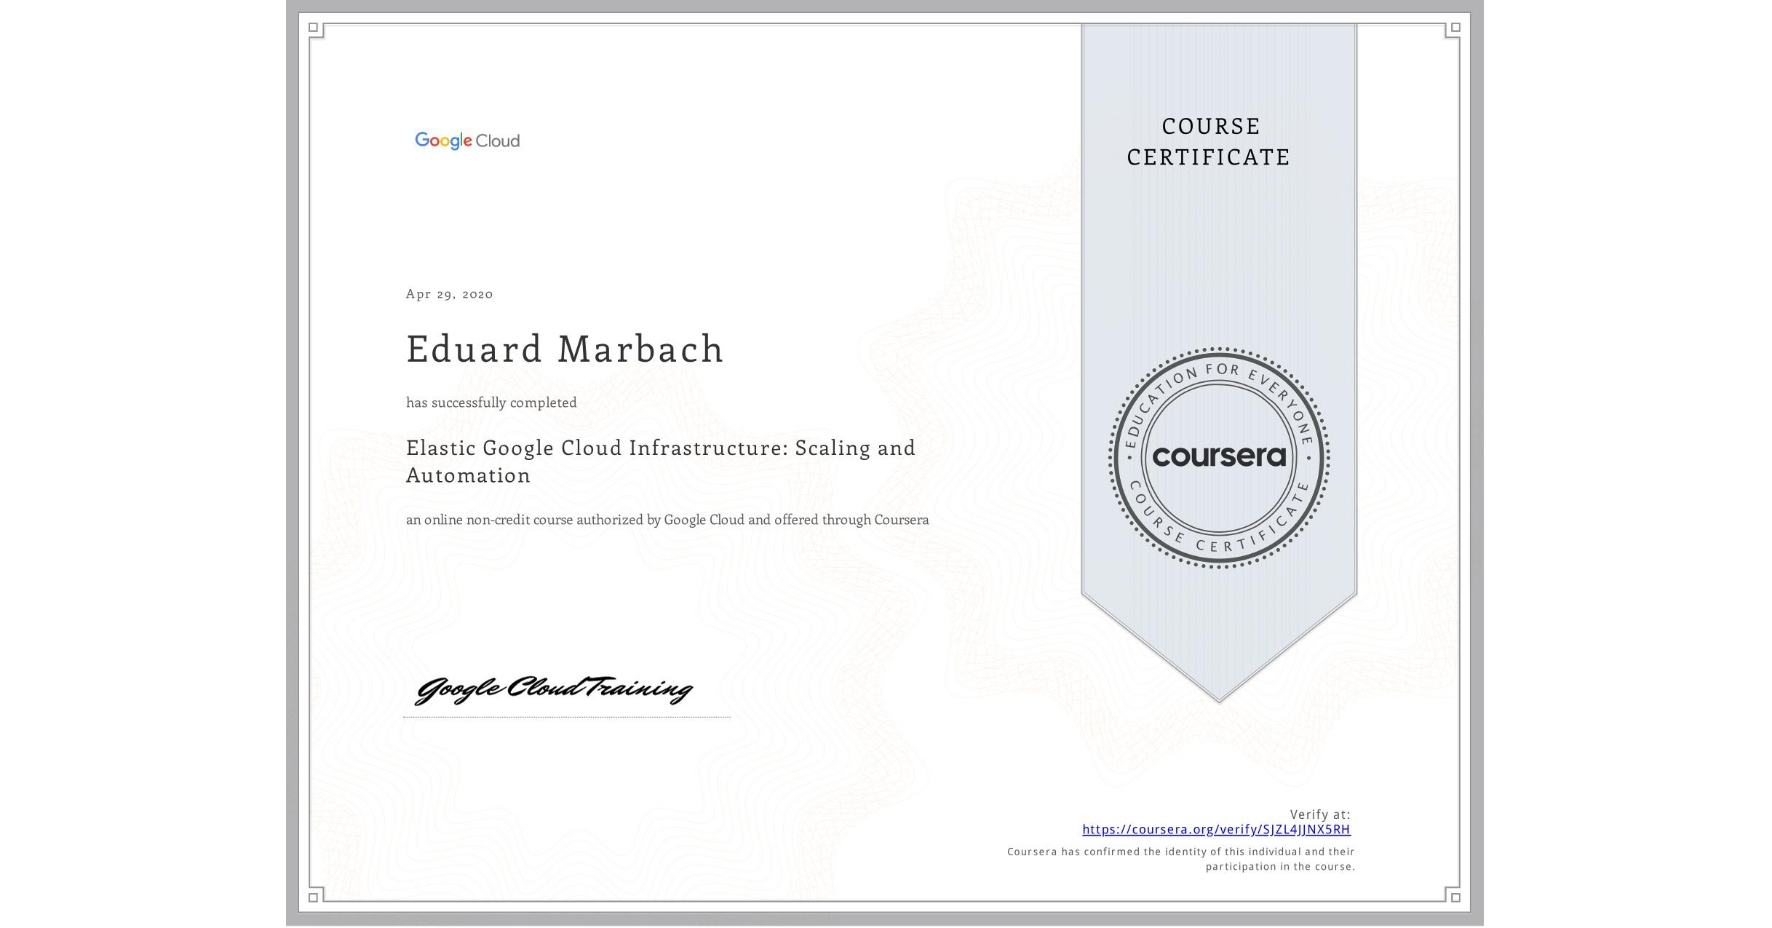 View certificate for Eduard Marbach, Elastic Google Cloud Infrastructure: Scaling and Automation, an online non-credit course authorized by Google Cloud and offered through Coursera